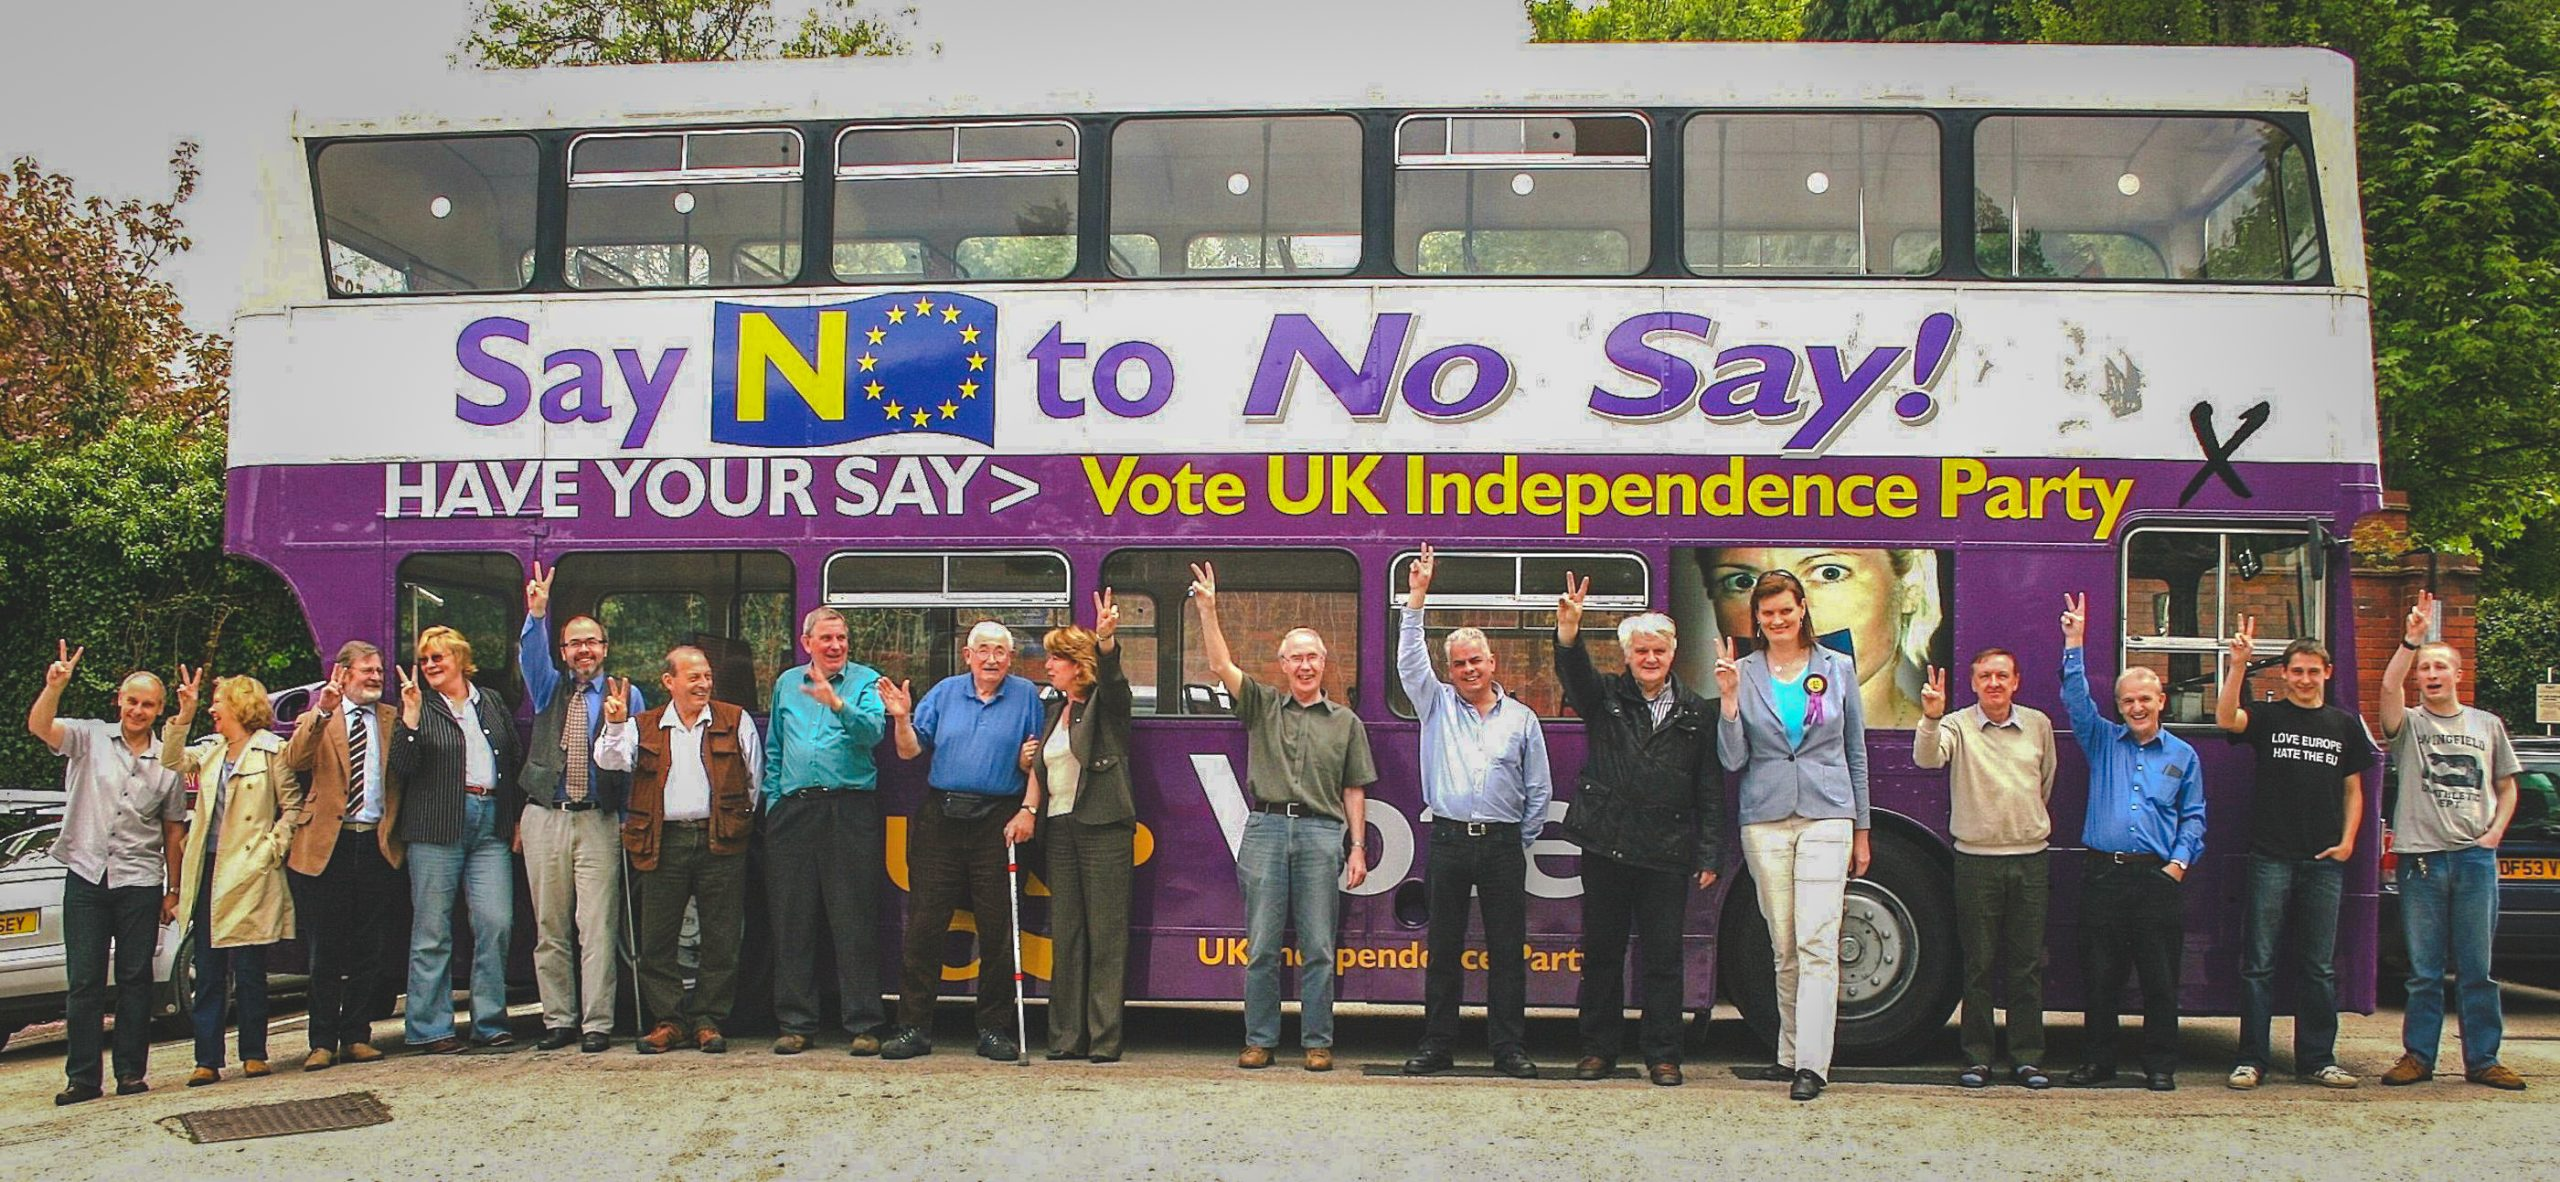 West Midlands UKIP activists, 2009 EU elections.